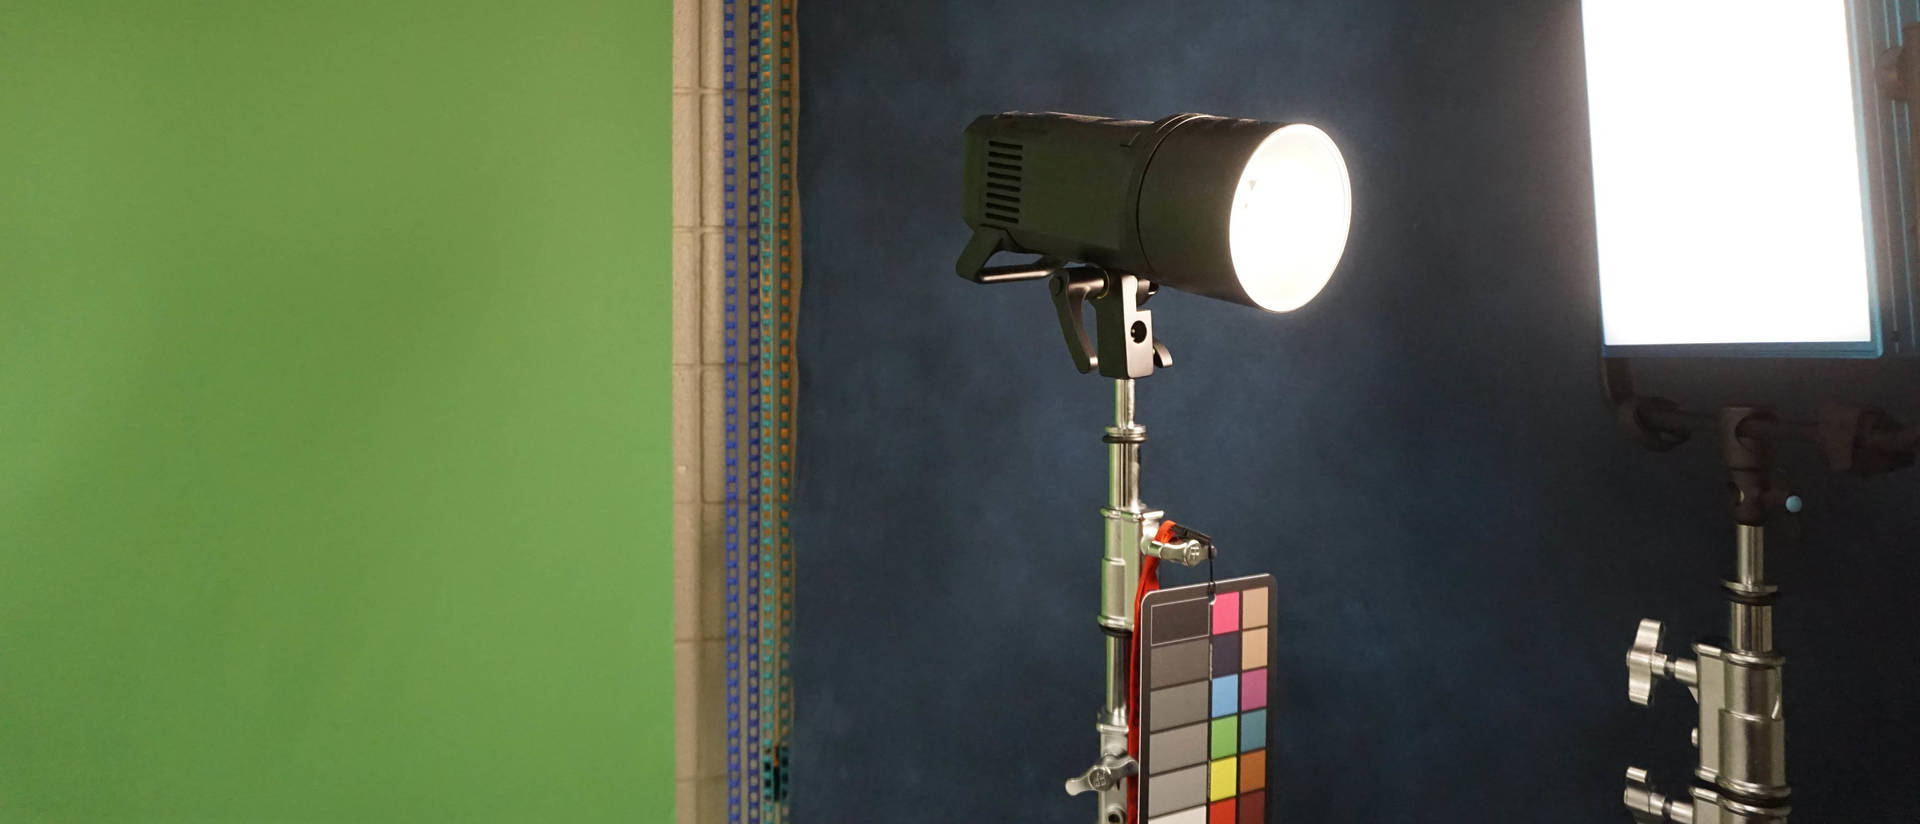 Two photography lights against a green screen